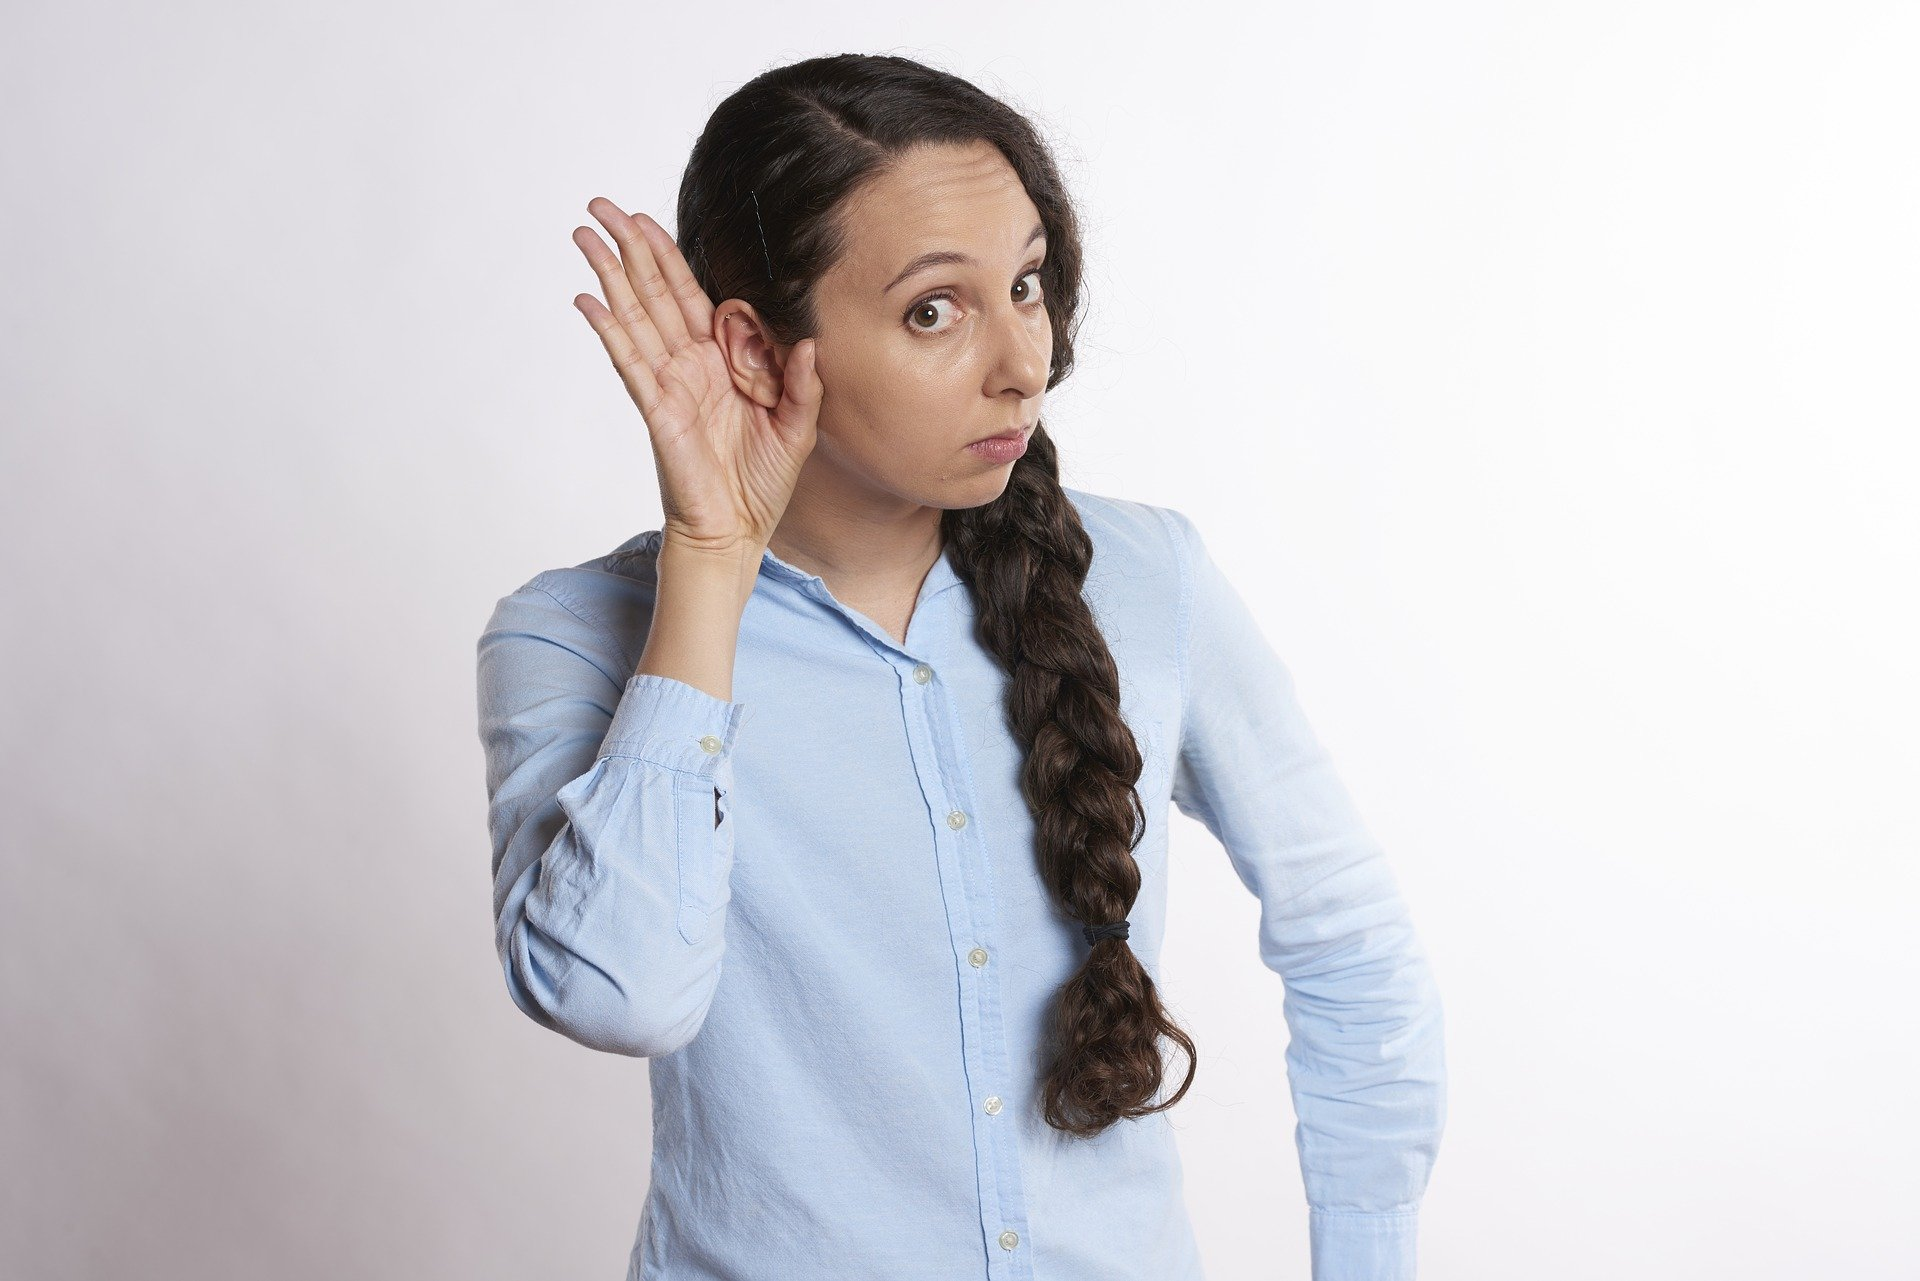 What are human hearing ranges?